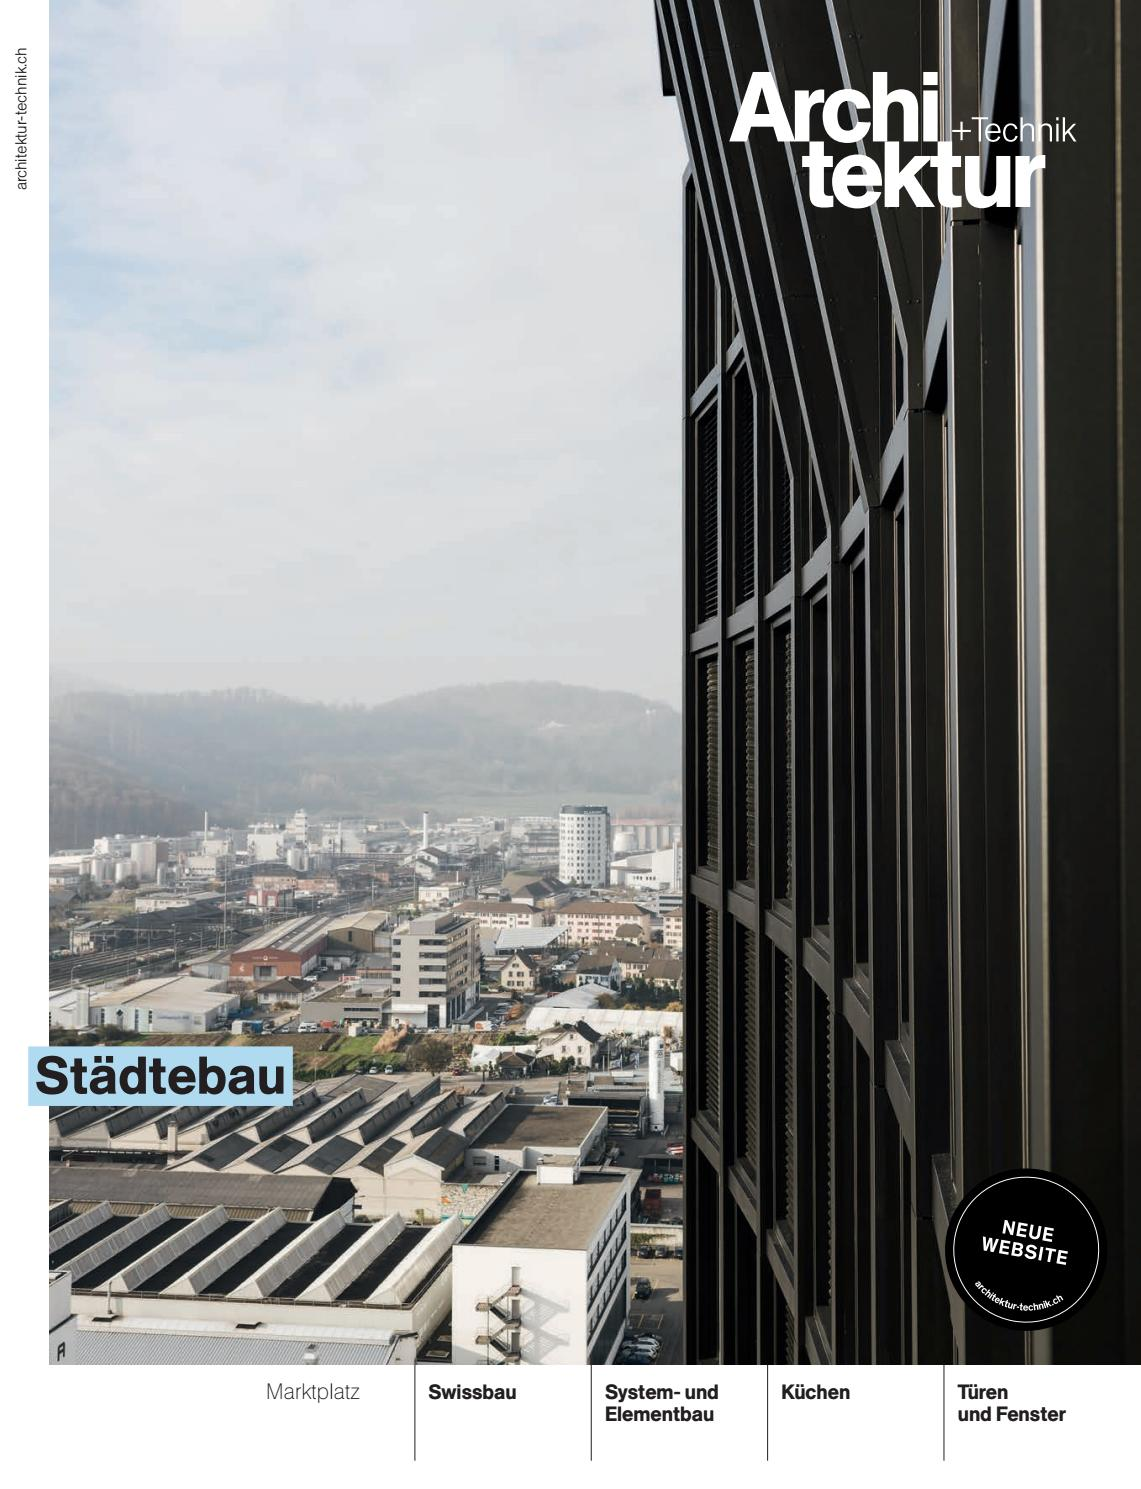 Architektur+Technik 12 2017 by BL Verlag AG issuu